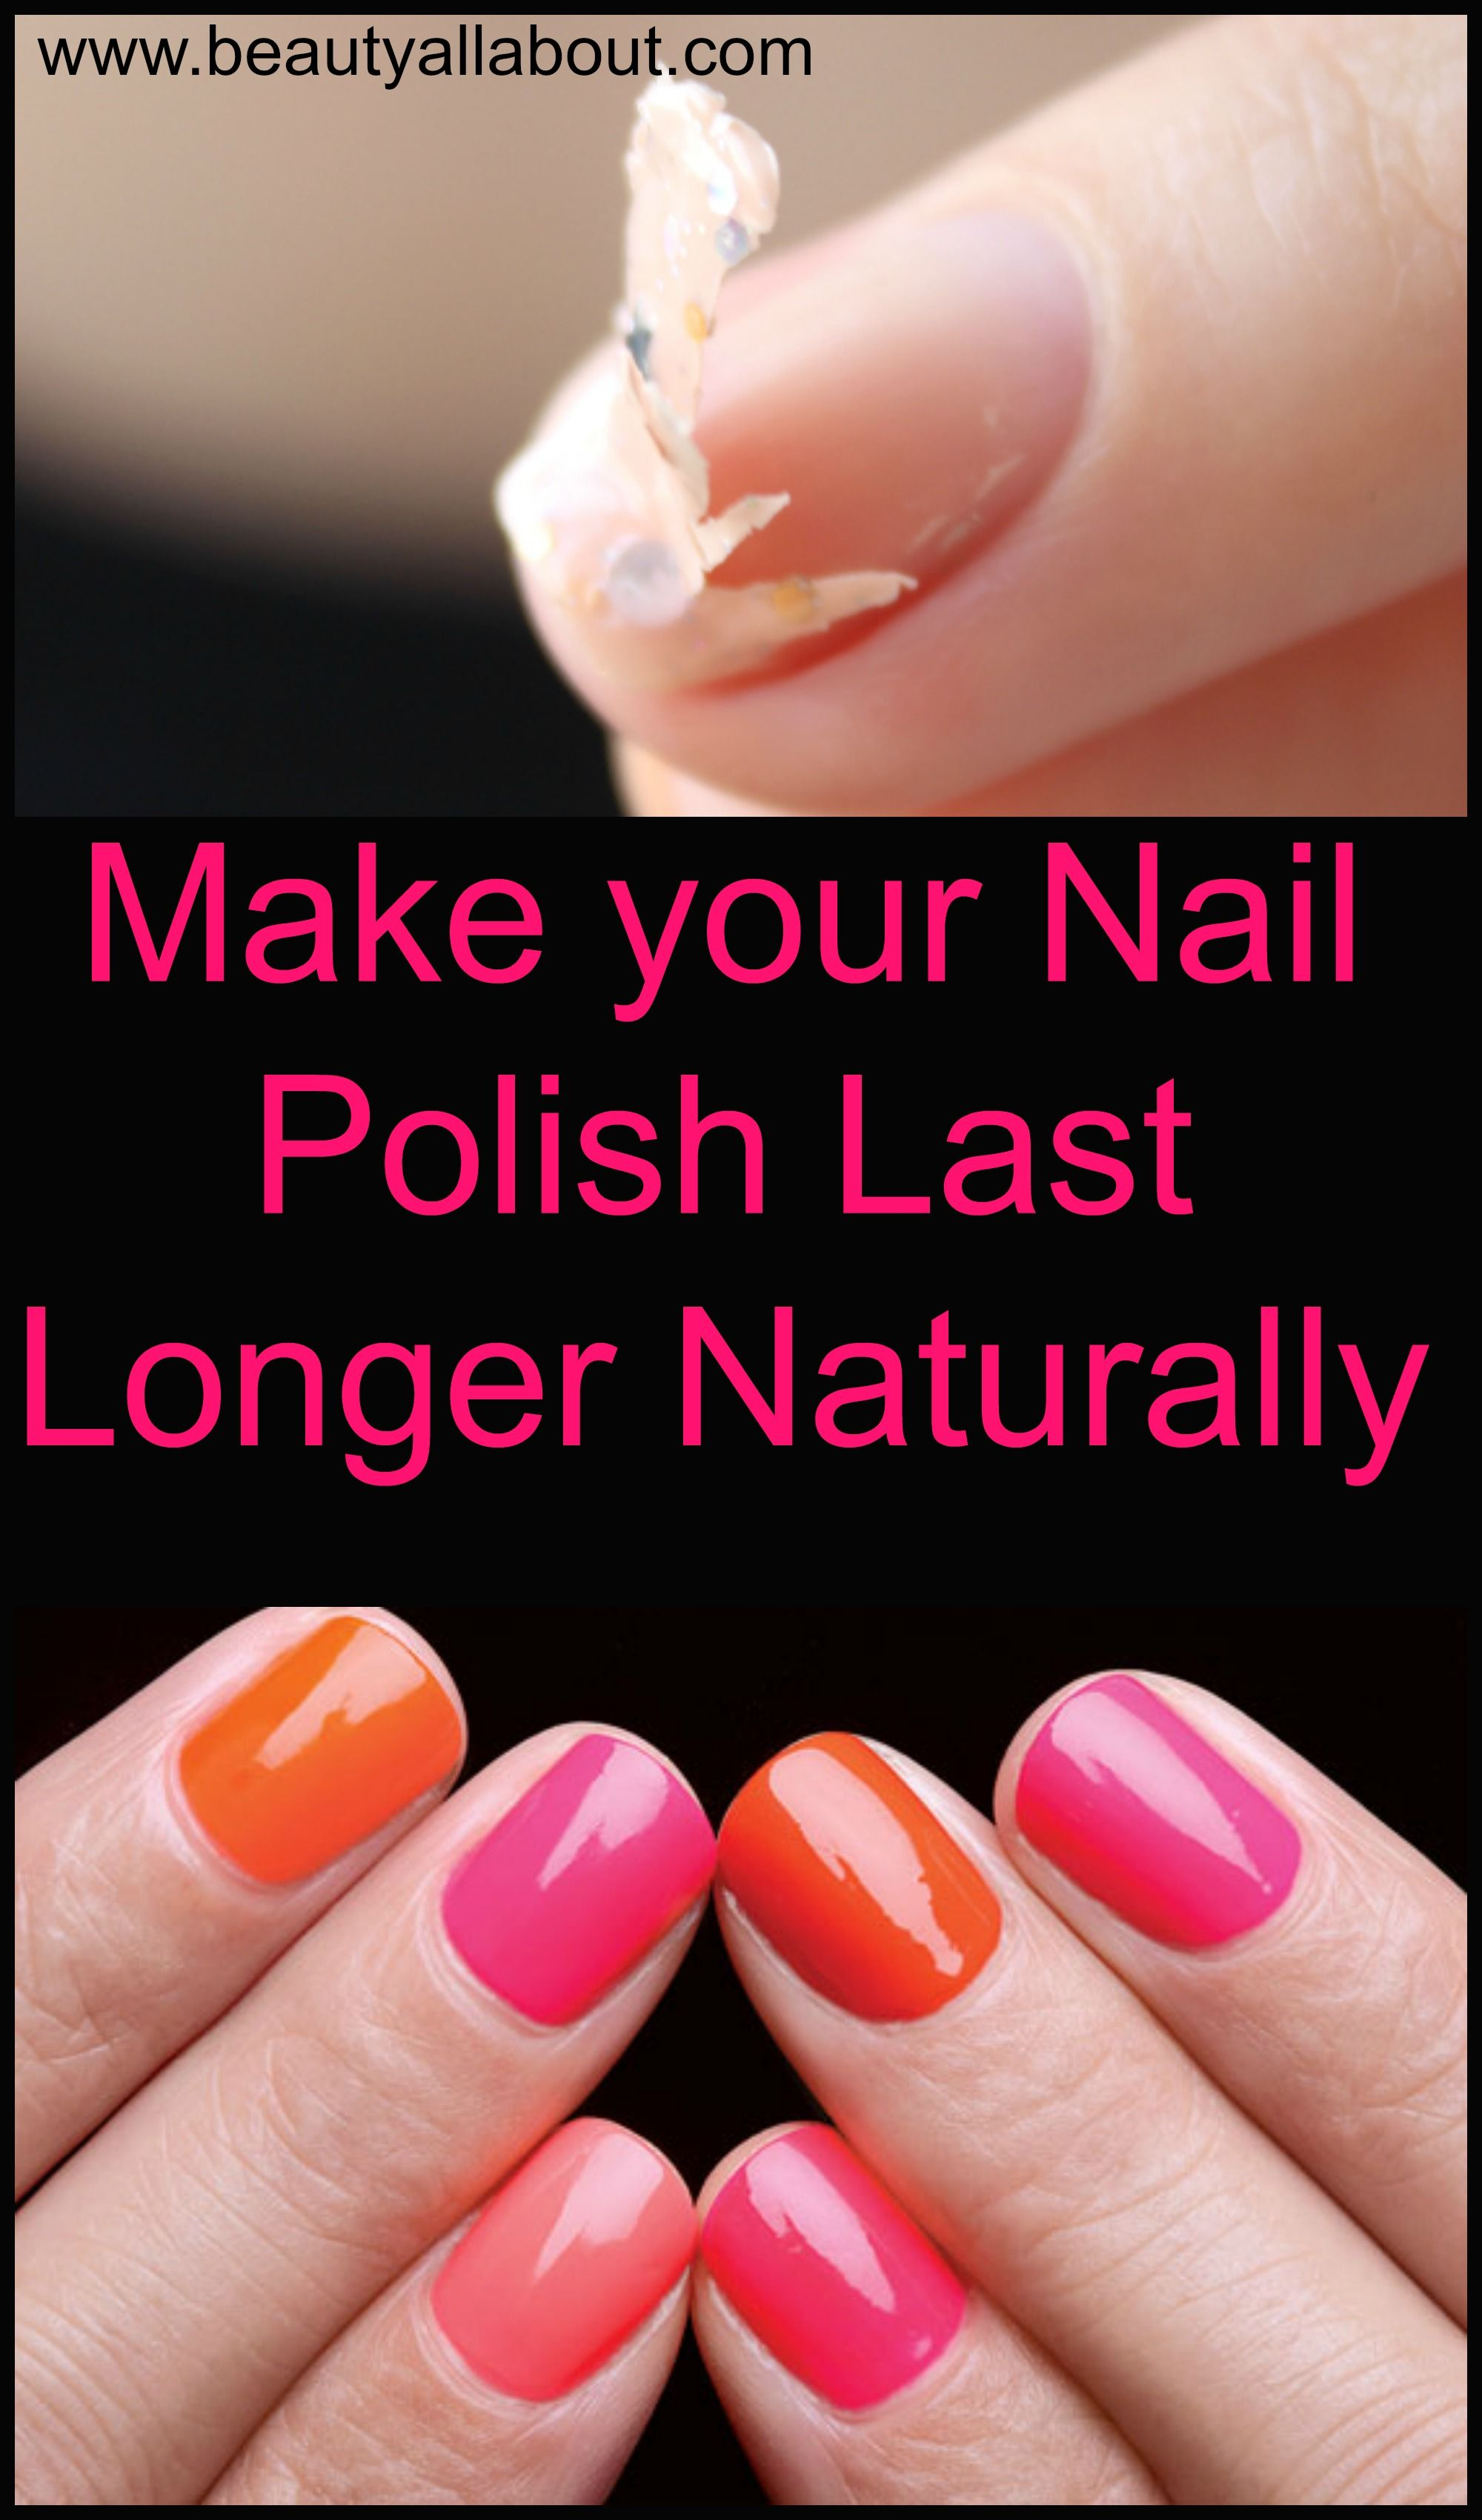 Make Your Nail Polish Last Longer Naturally Nail Polish Long Lasting Nail Polish You Nailed It